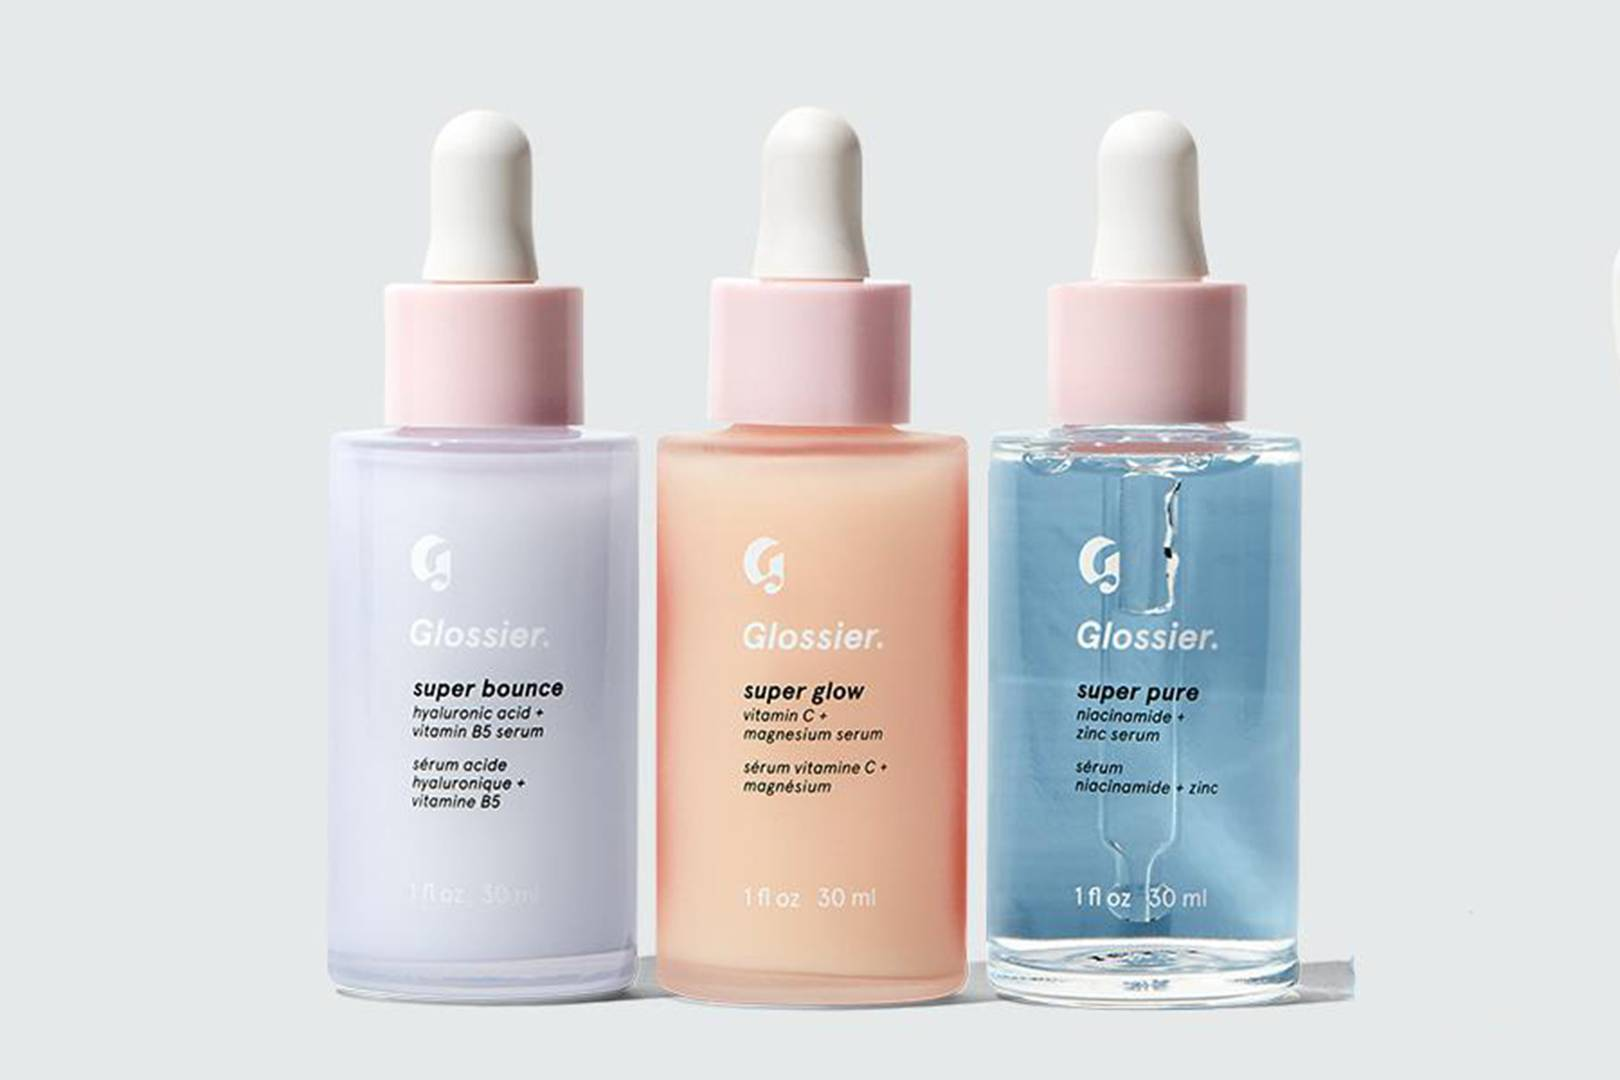 a78339bb80 New Beauty Products: The 2019 Beauty Launches You Need To Know About    Glamour UK